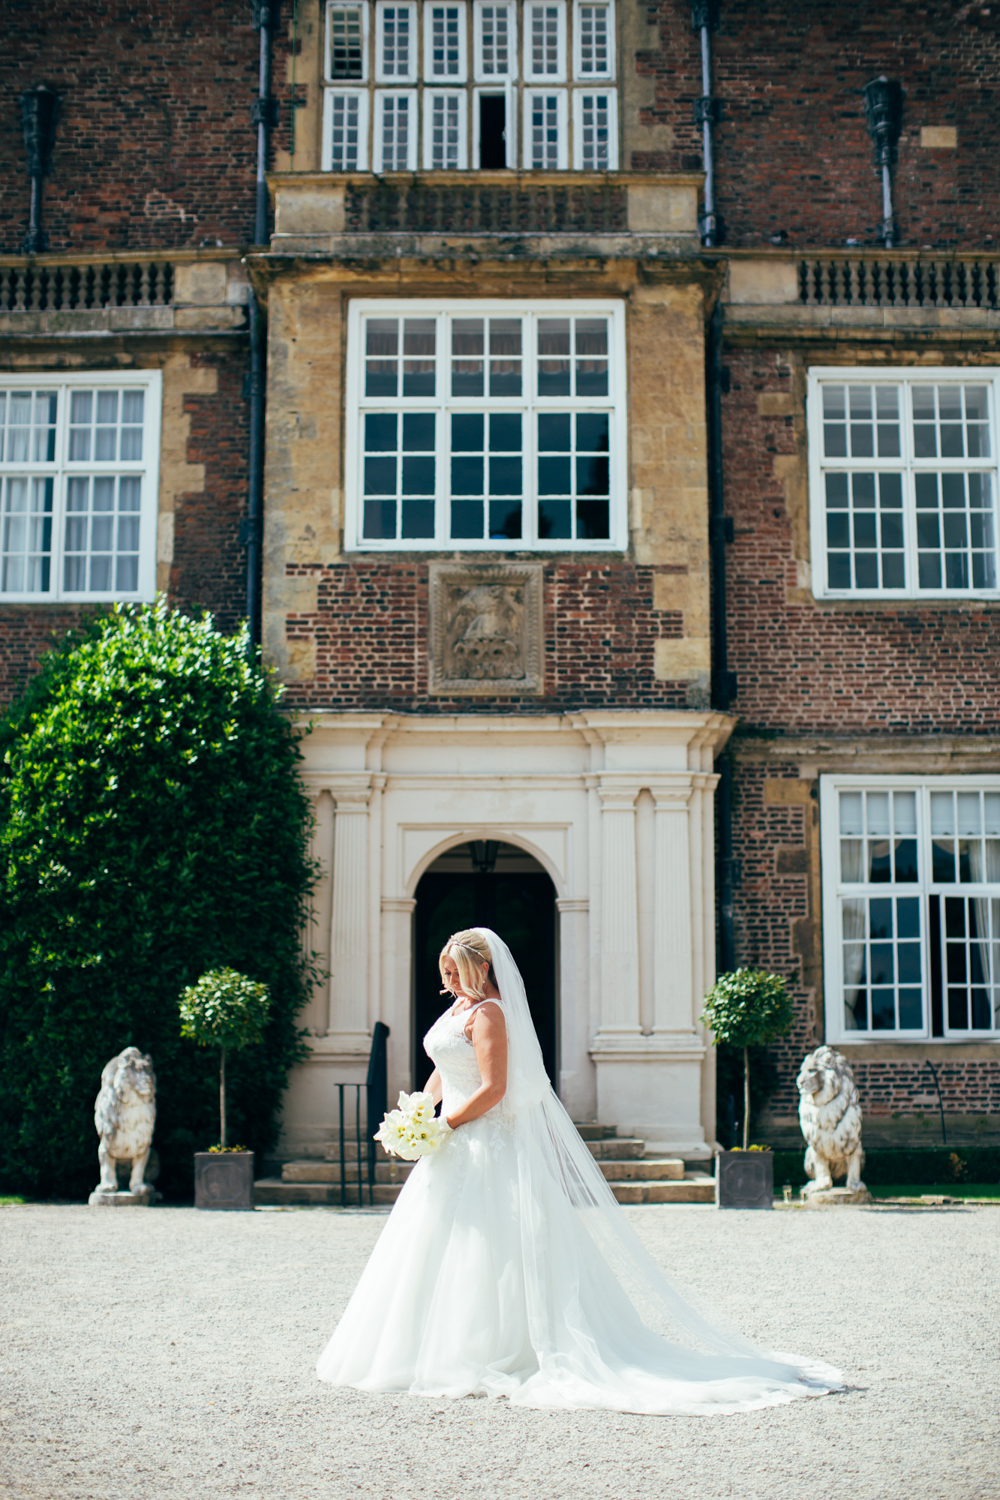 Goldsborough Hall Harrogate Wedding Photographer-14.jpg